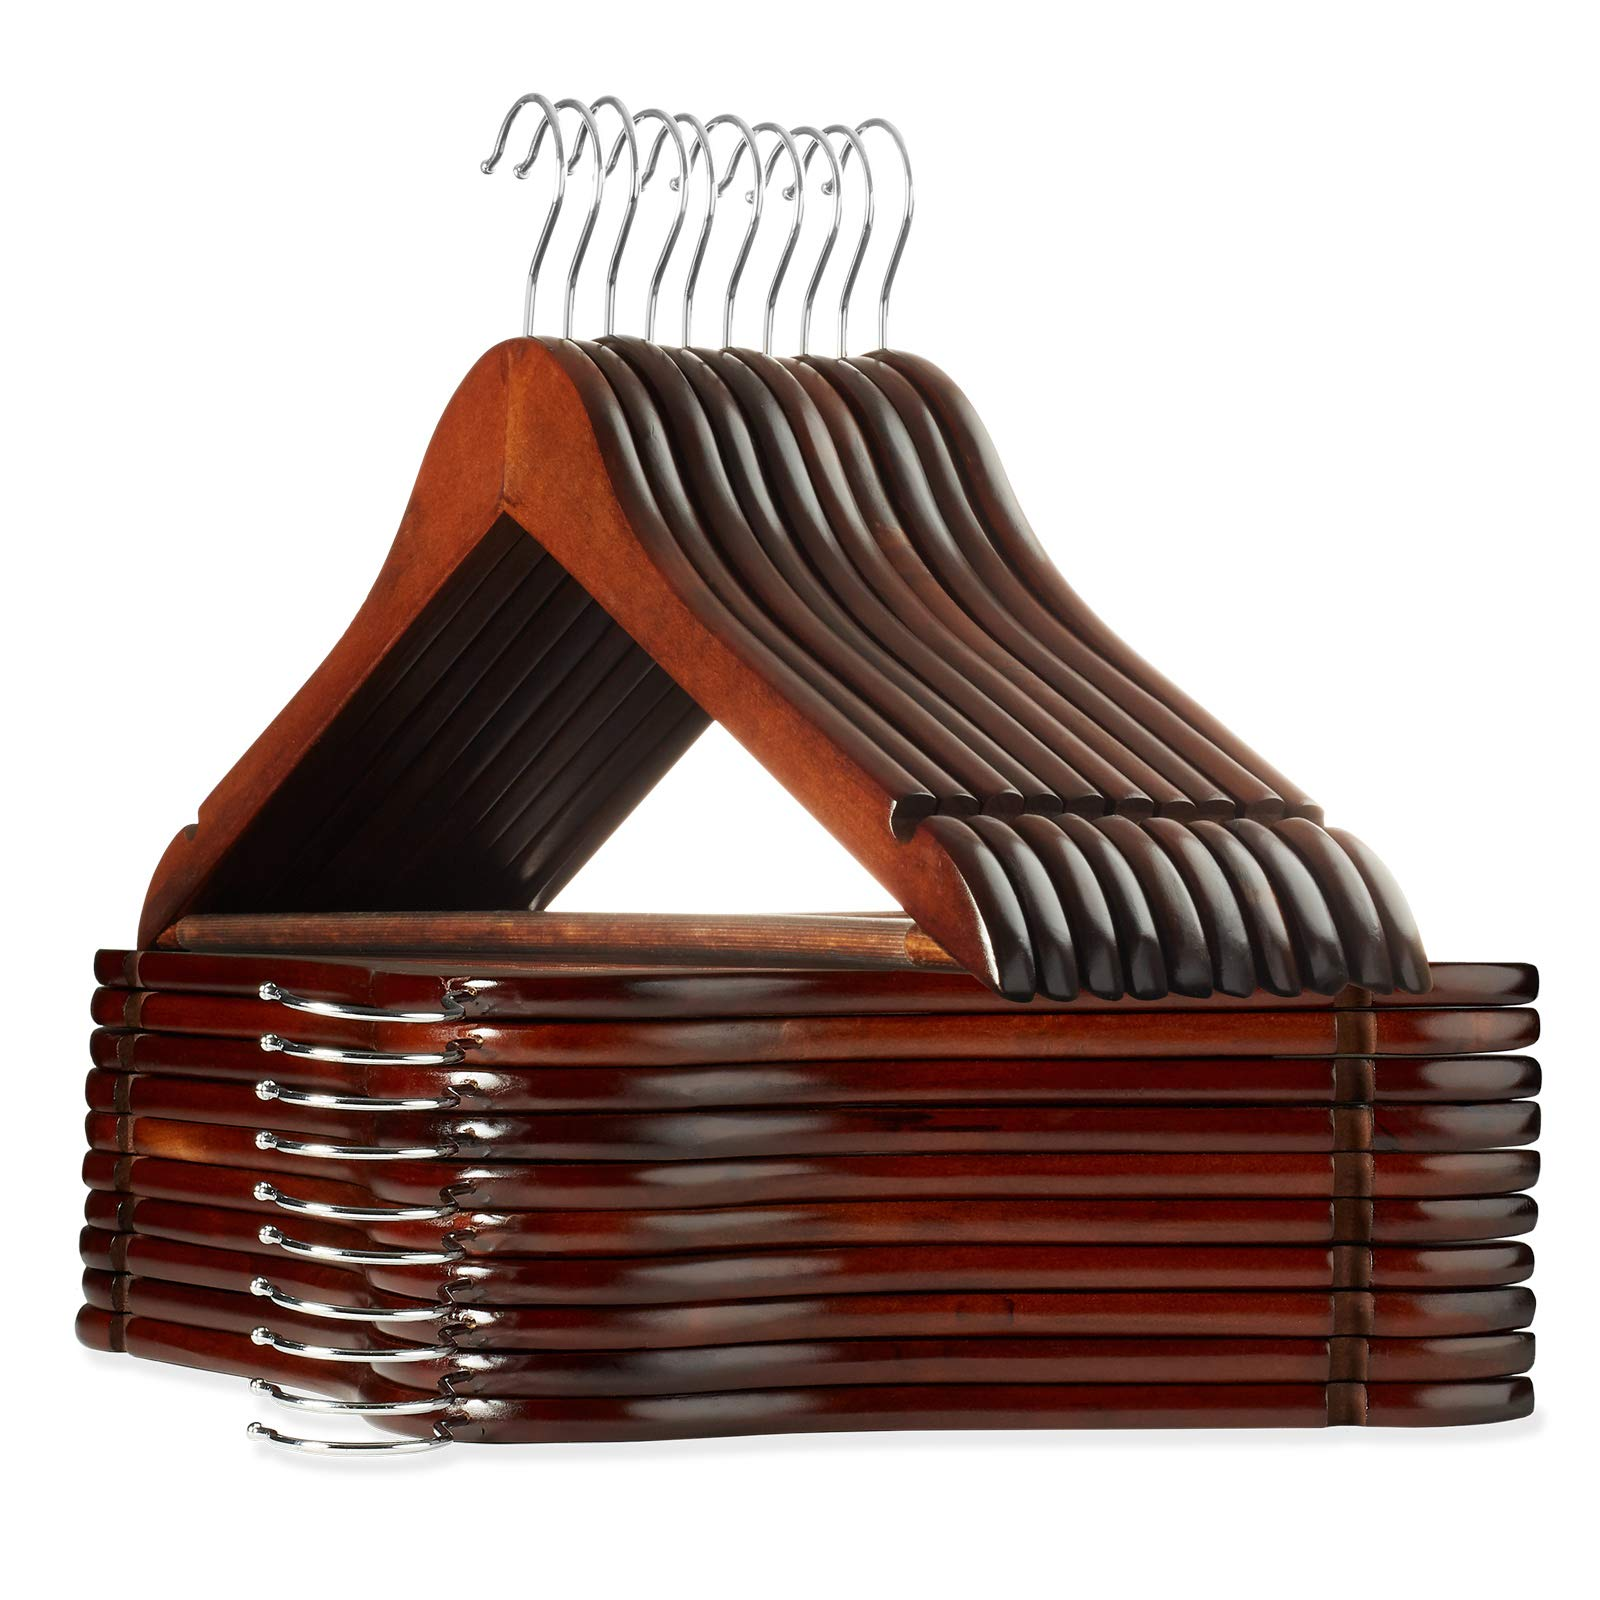 Casafield - 20 Walnut Wooden Suit Hangers - Premium Lotus Wood with Notches & Chrome Swivel Hook for Dress Clothes, Coats, Jackets, Pants, Shirts, Skirts by Casafield